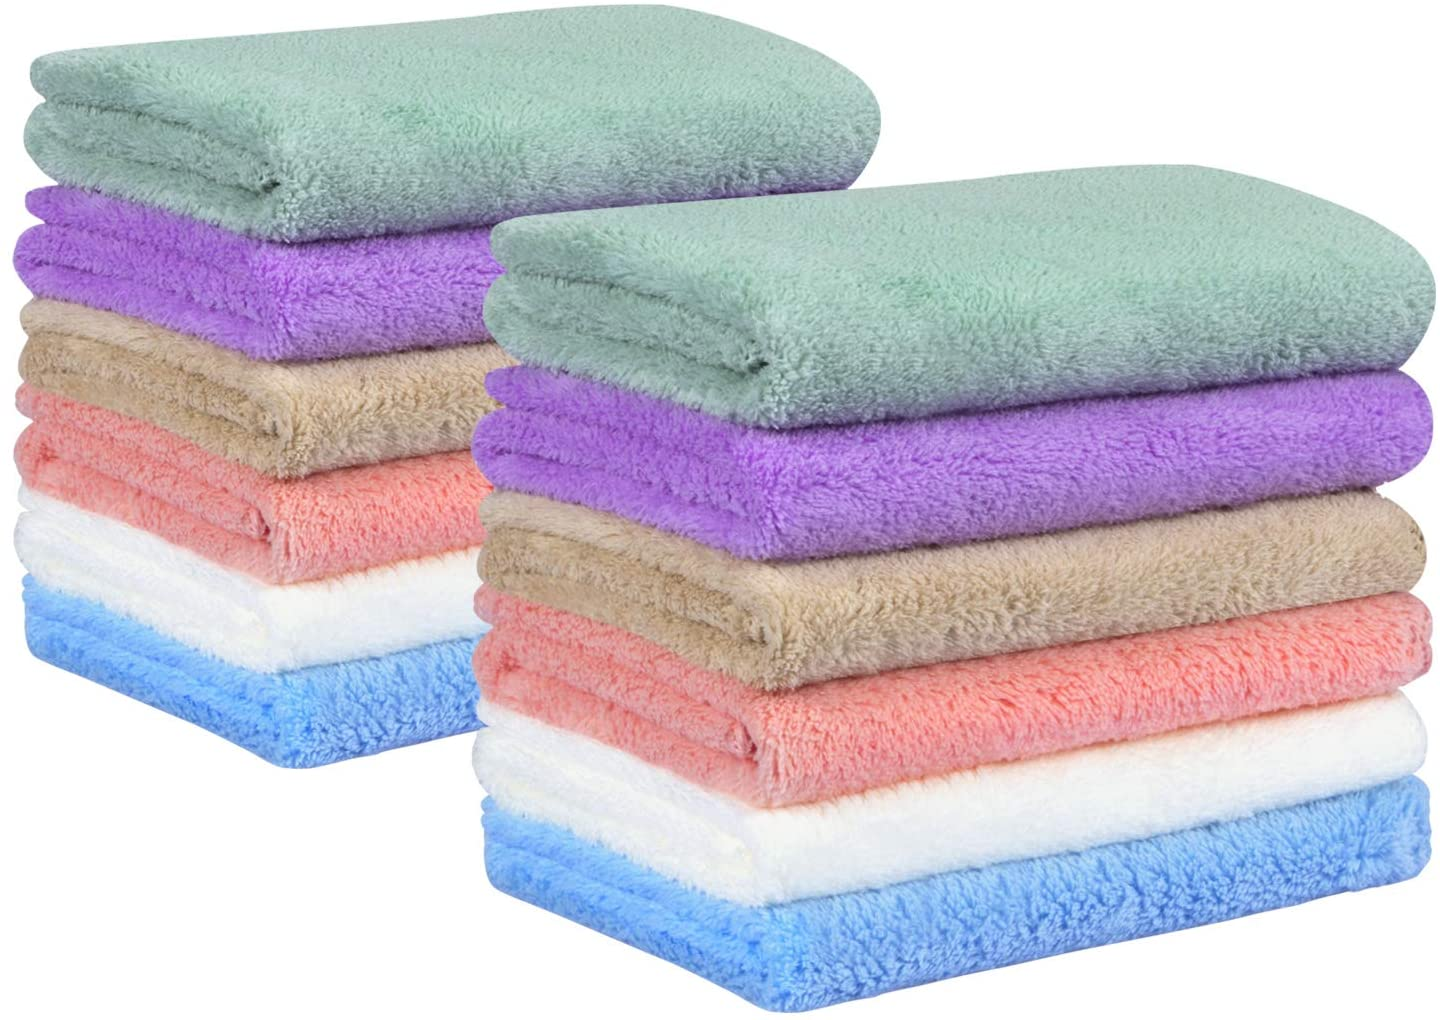 Yoofoss Baby Washcloths 12x12 Inches Pack of 12 Ultra Soft Absorbent Wash Towel - Newborn Bath Face Towel - Reusable Newborn Baby Wipes